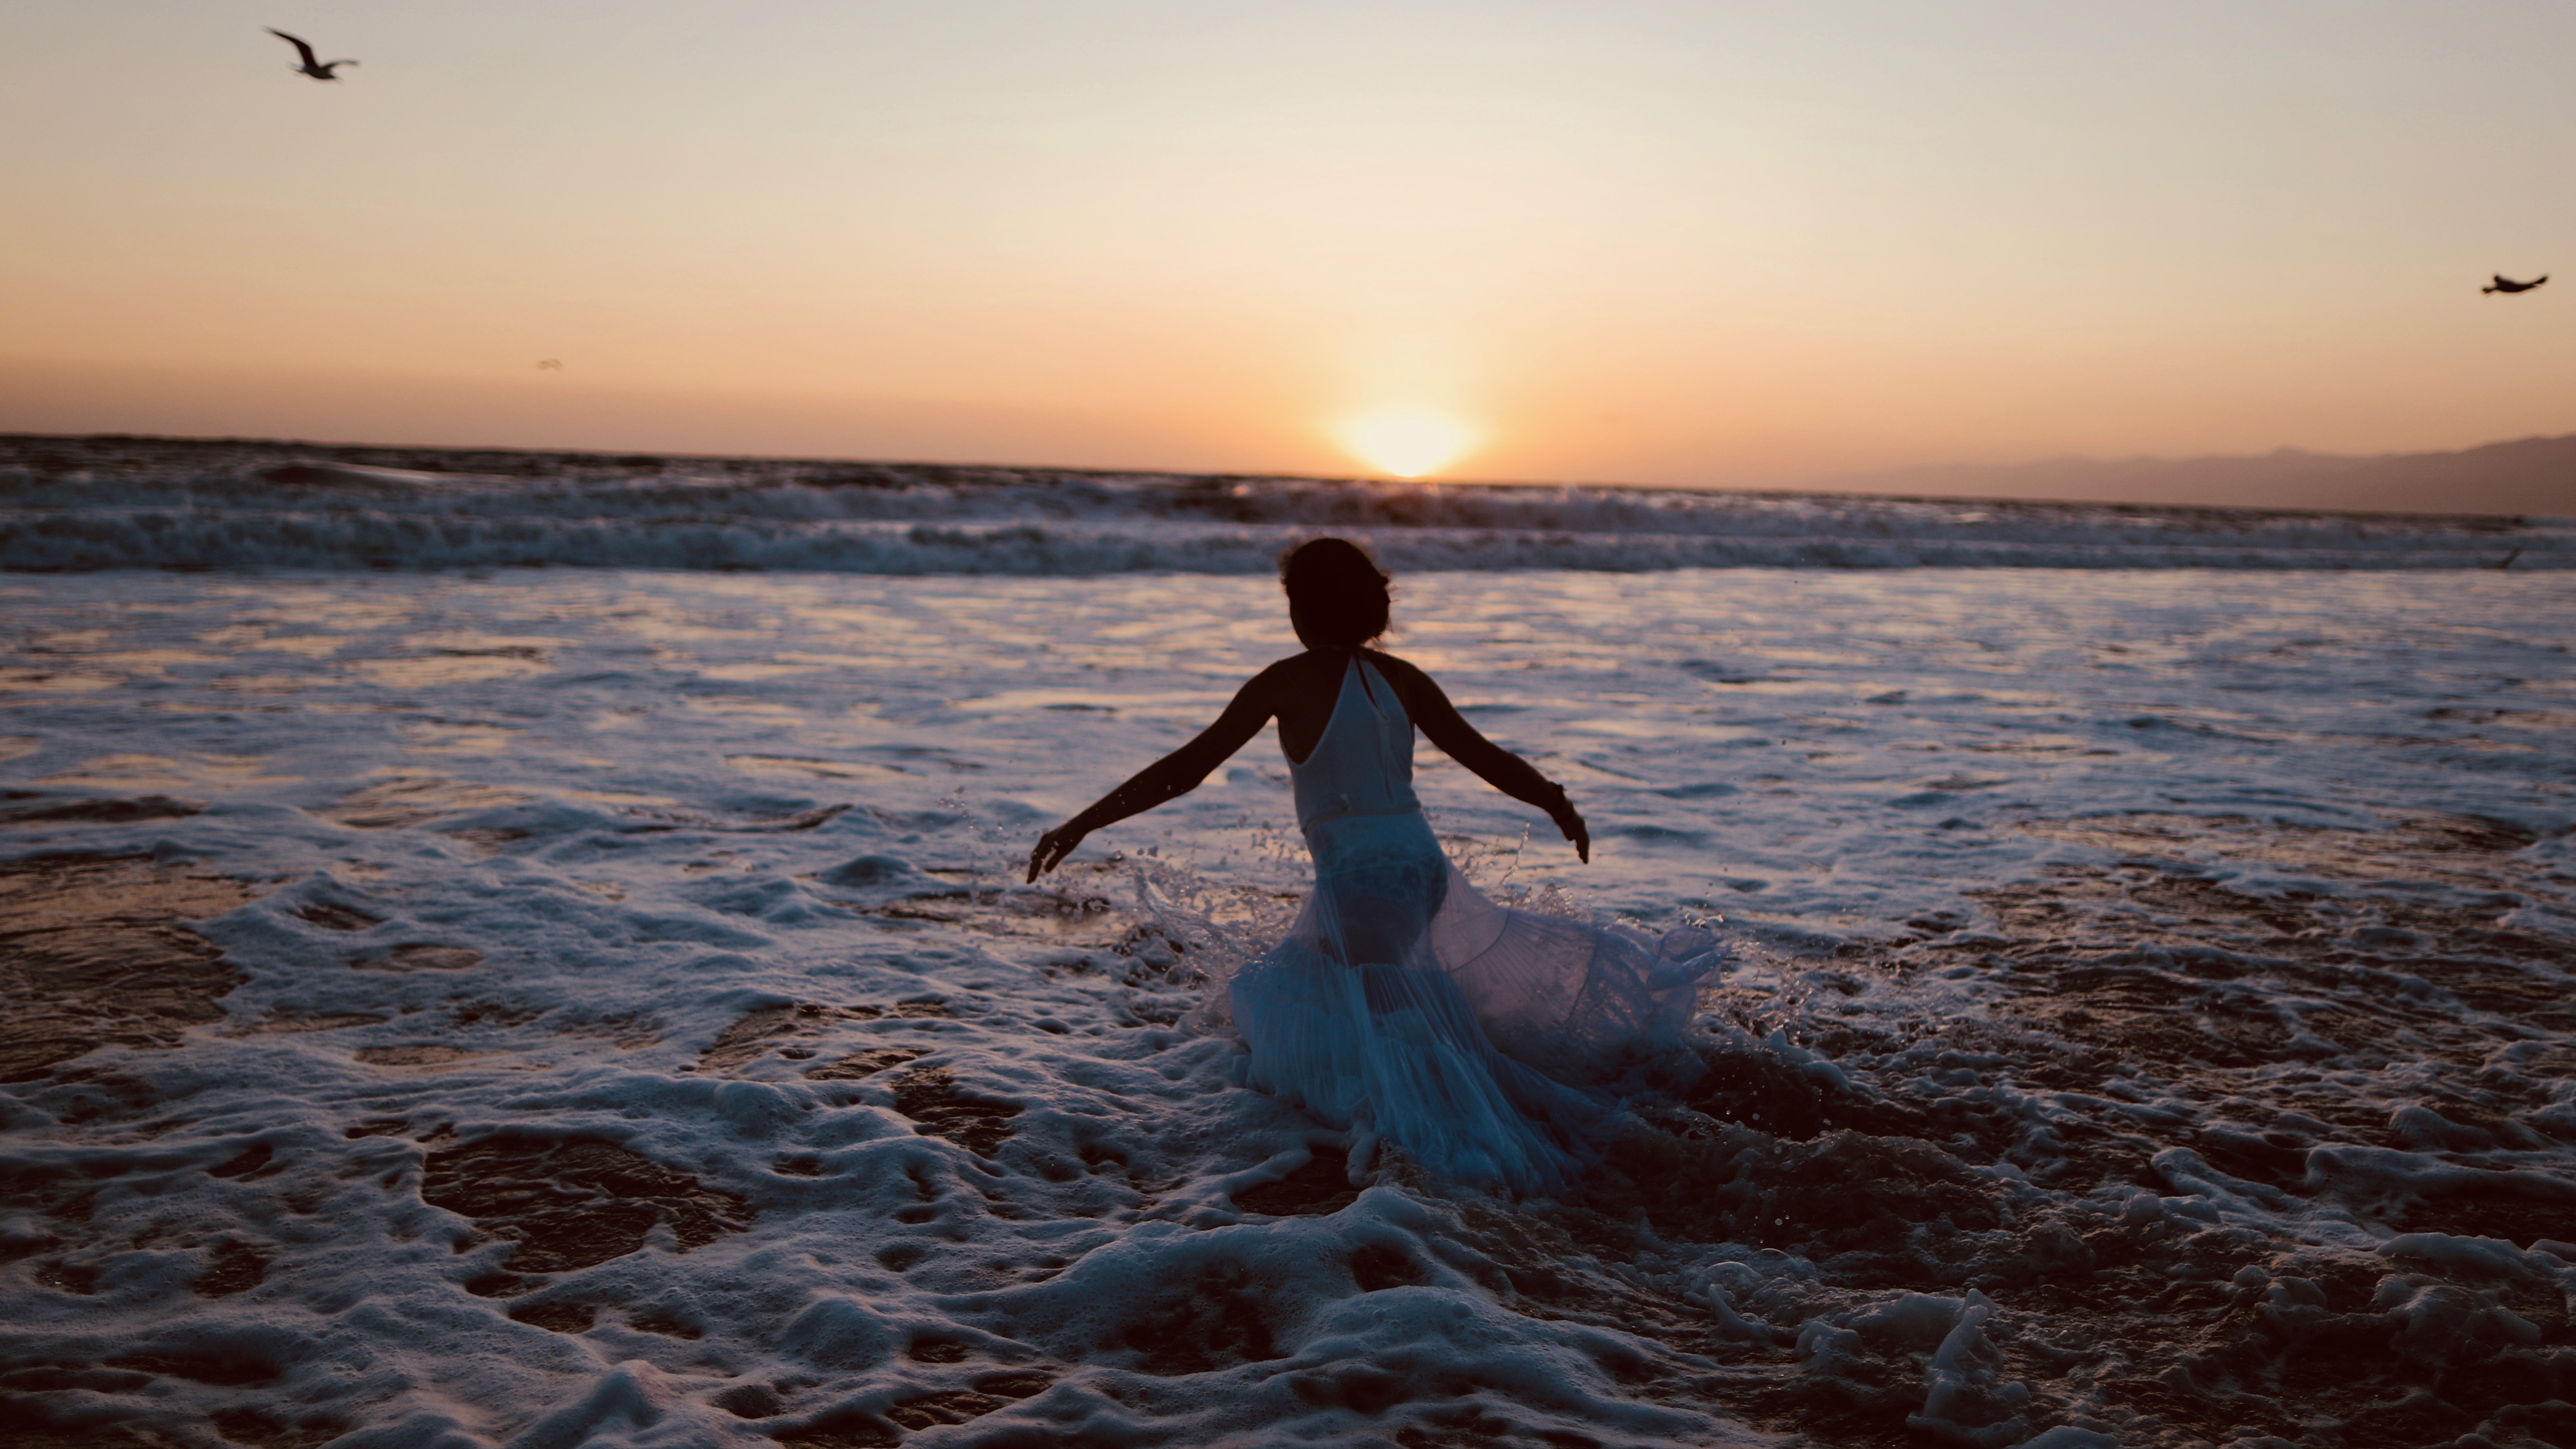 runs into the Pacific Ocean in a Jewish ritual to cast away sins on Rosh Hashanah.